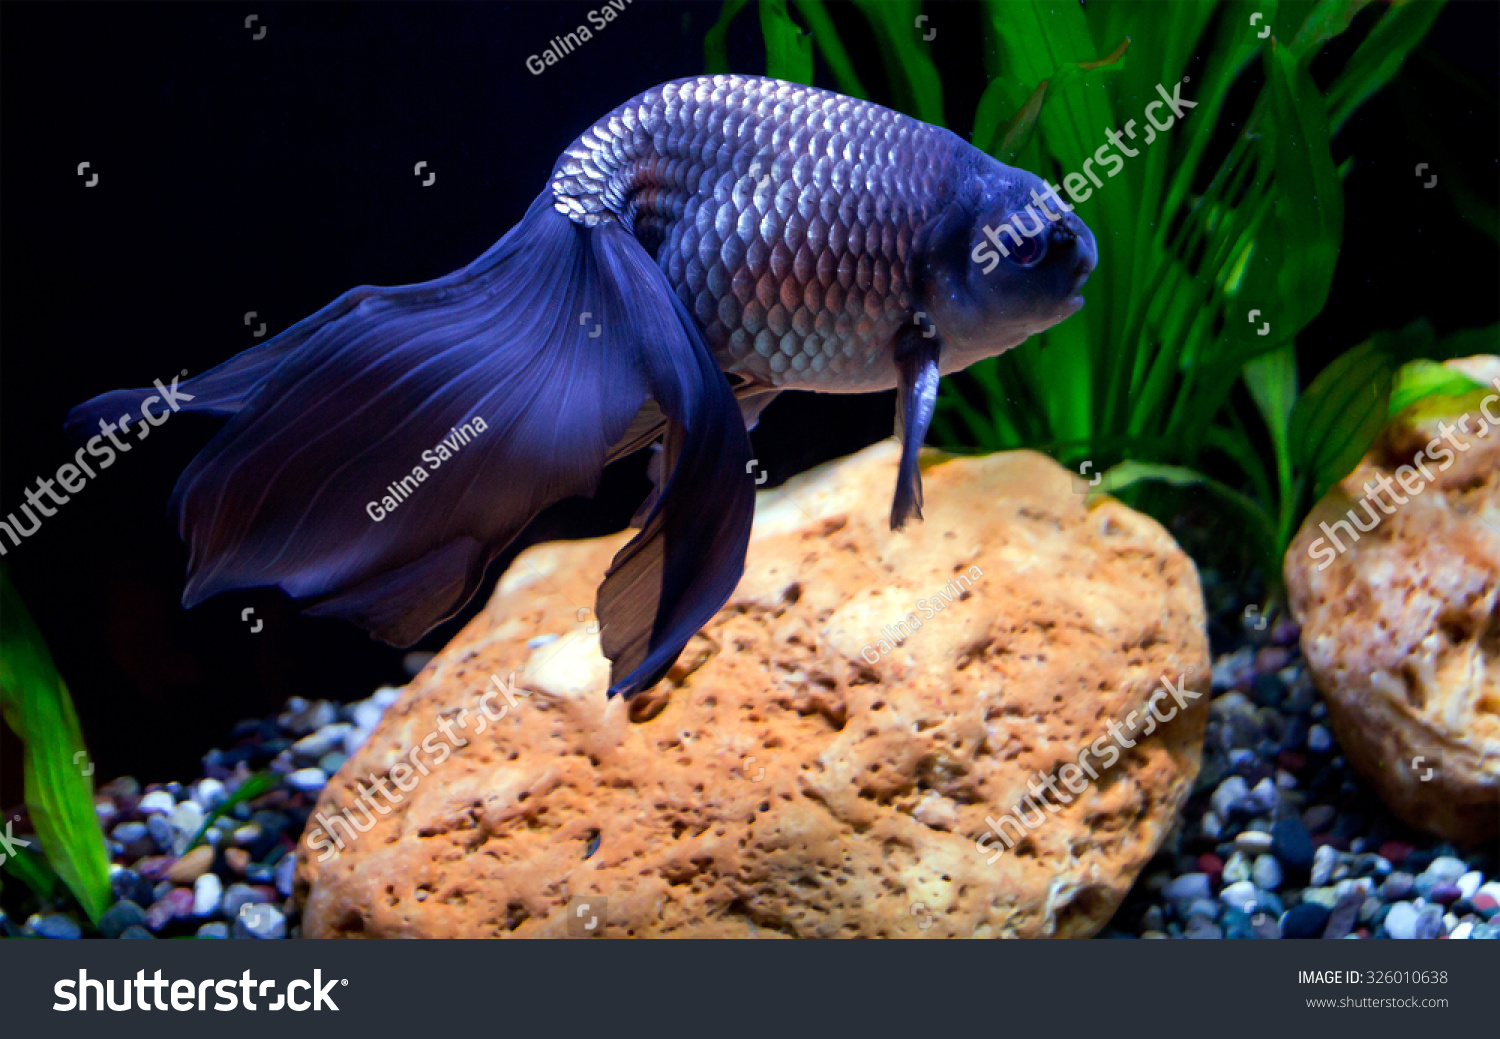 Aquarium blue fish the tail is the main beauty of the fish for Fish on main